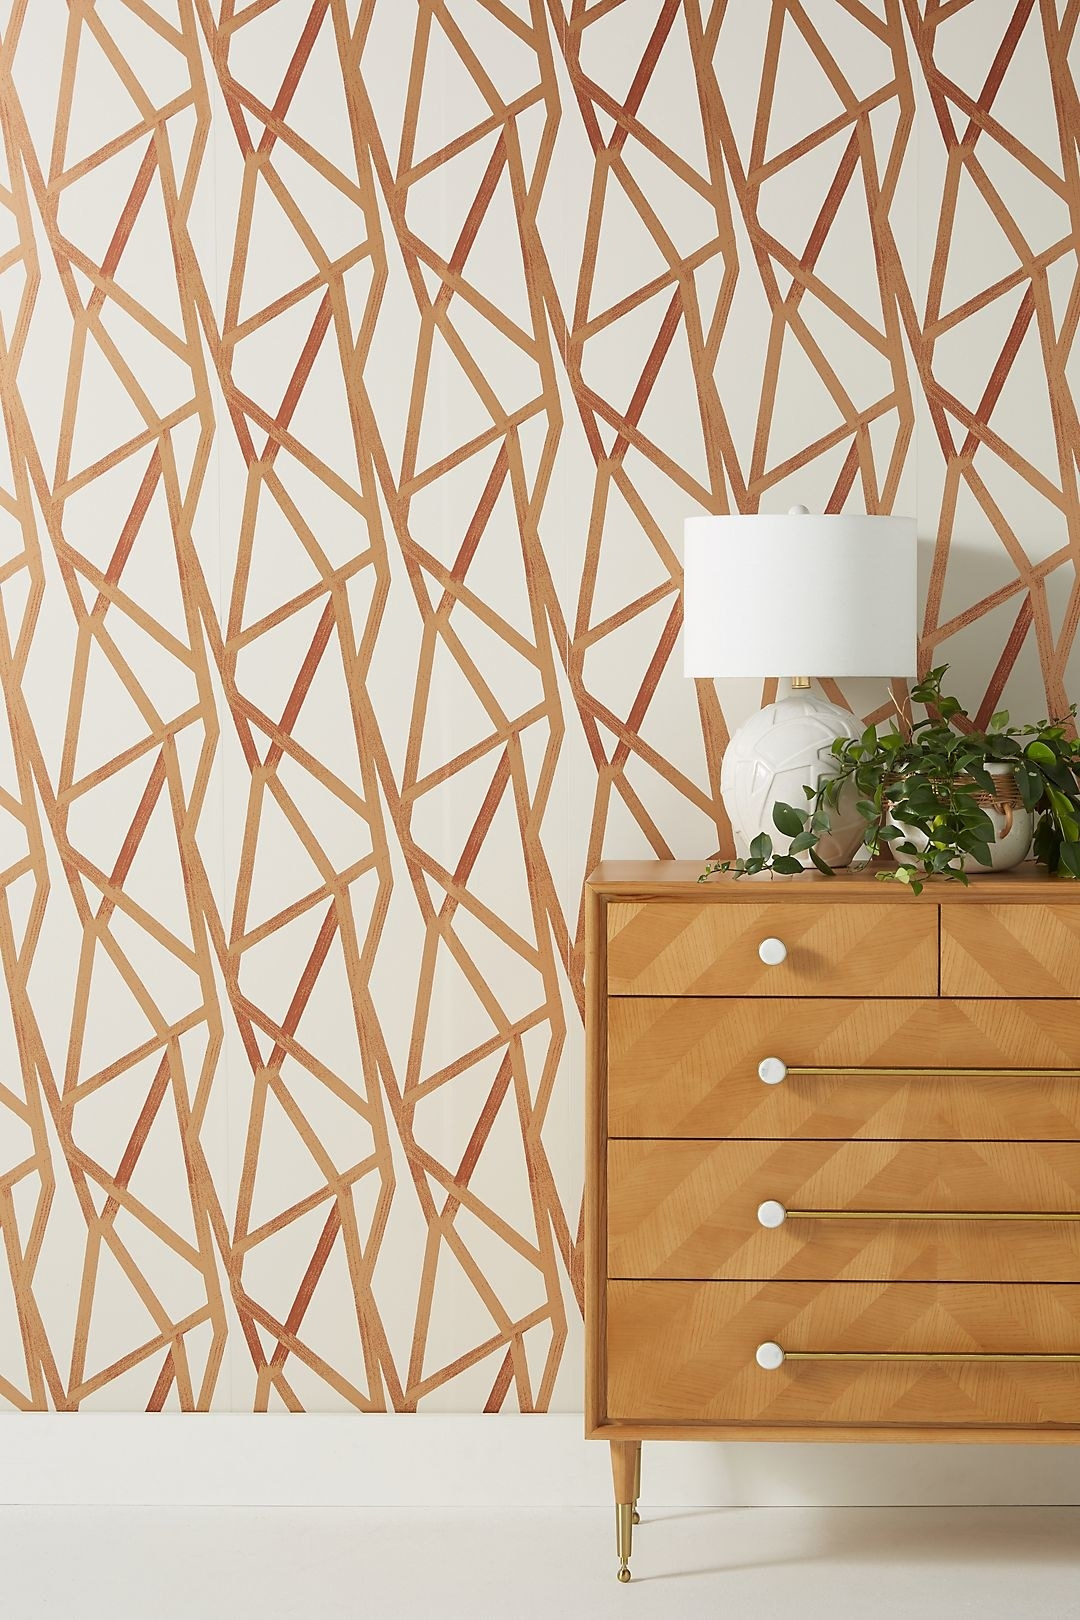 the geometric removable wallpaper that is cream with bronze shapes on top